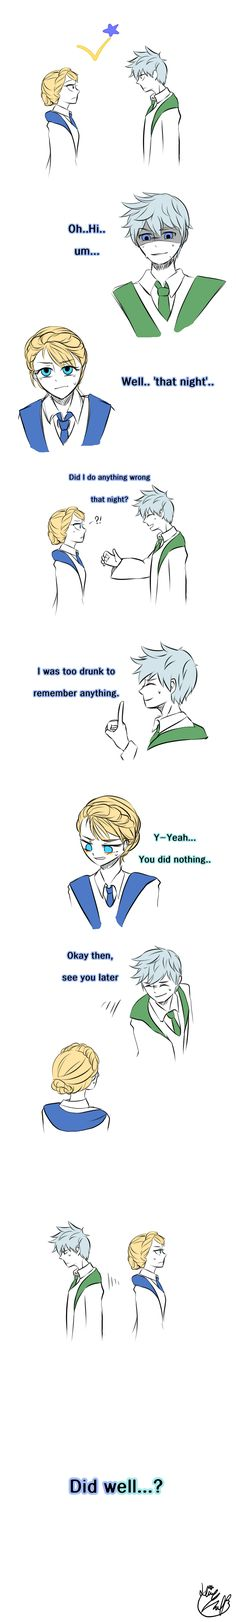 Lie by Lime-Hael on deviantART   Frozen's Elsa and Rise of the Guardians' Jack Frost   J.K. Rowling's Harry Potter